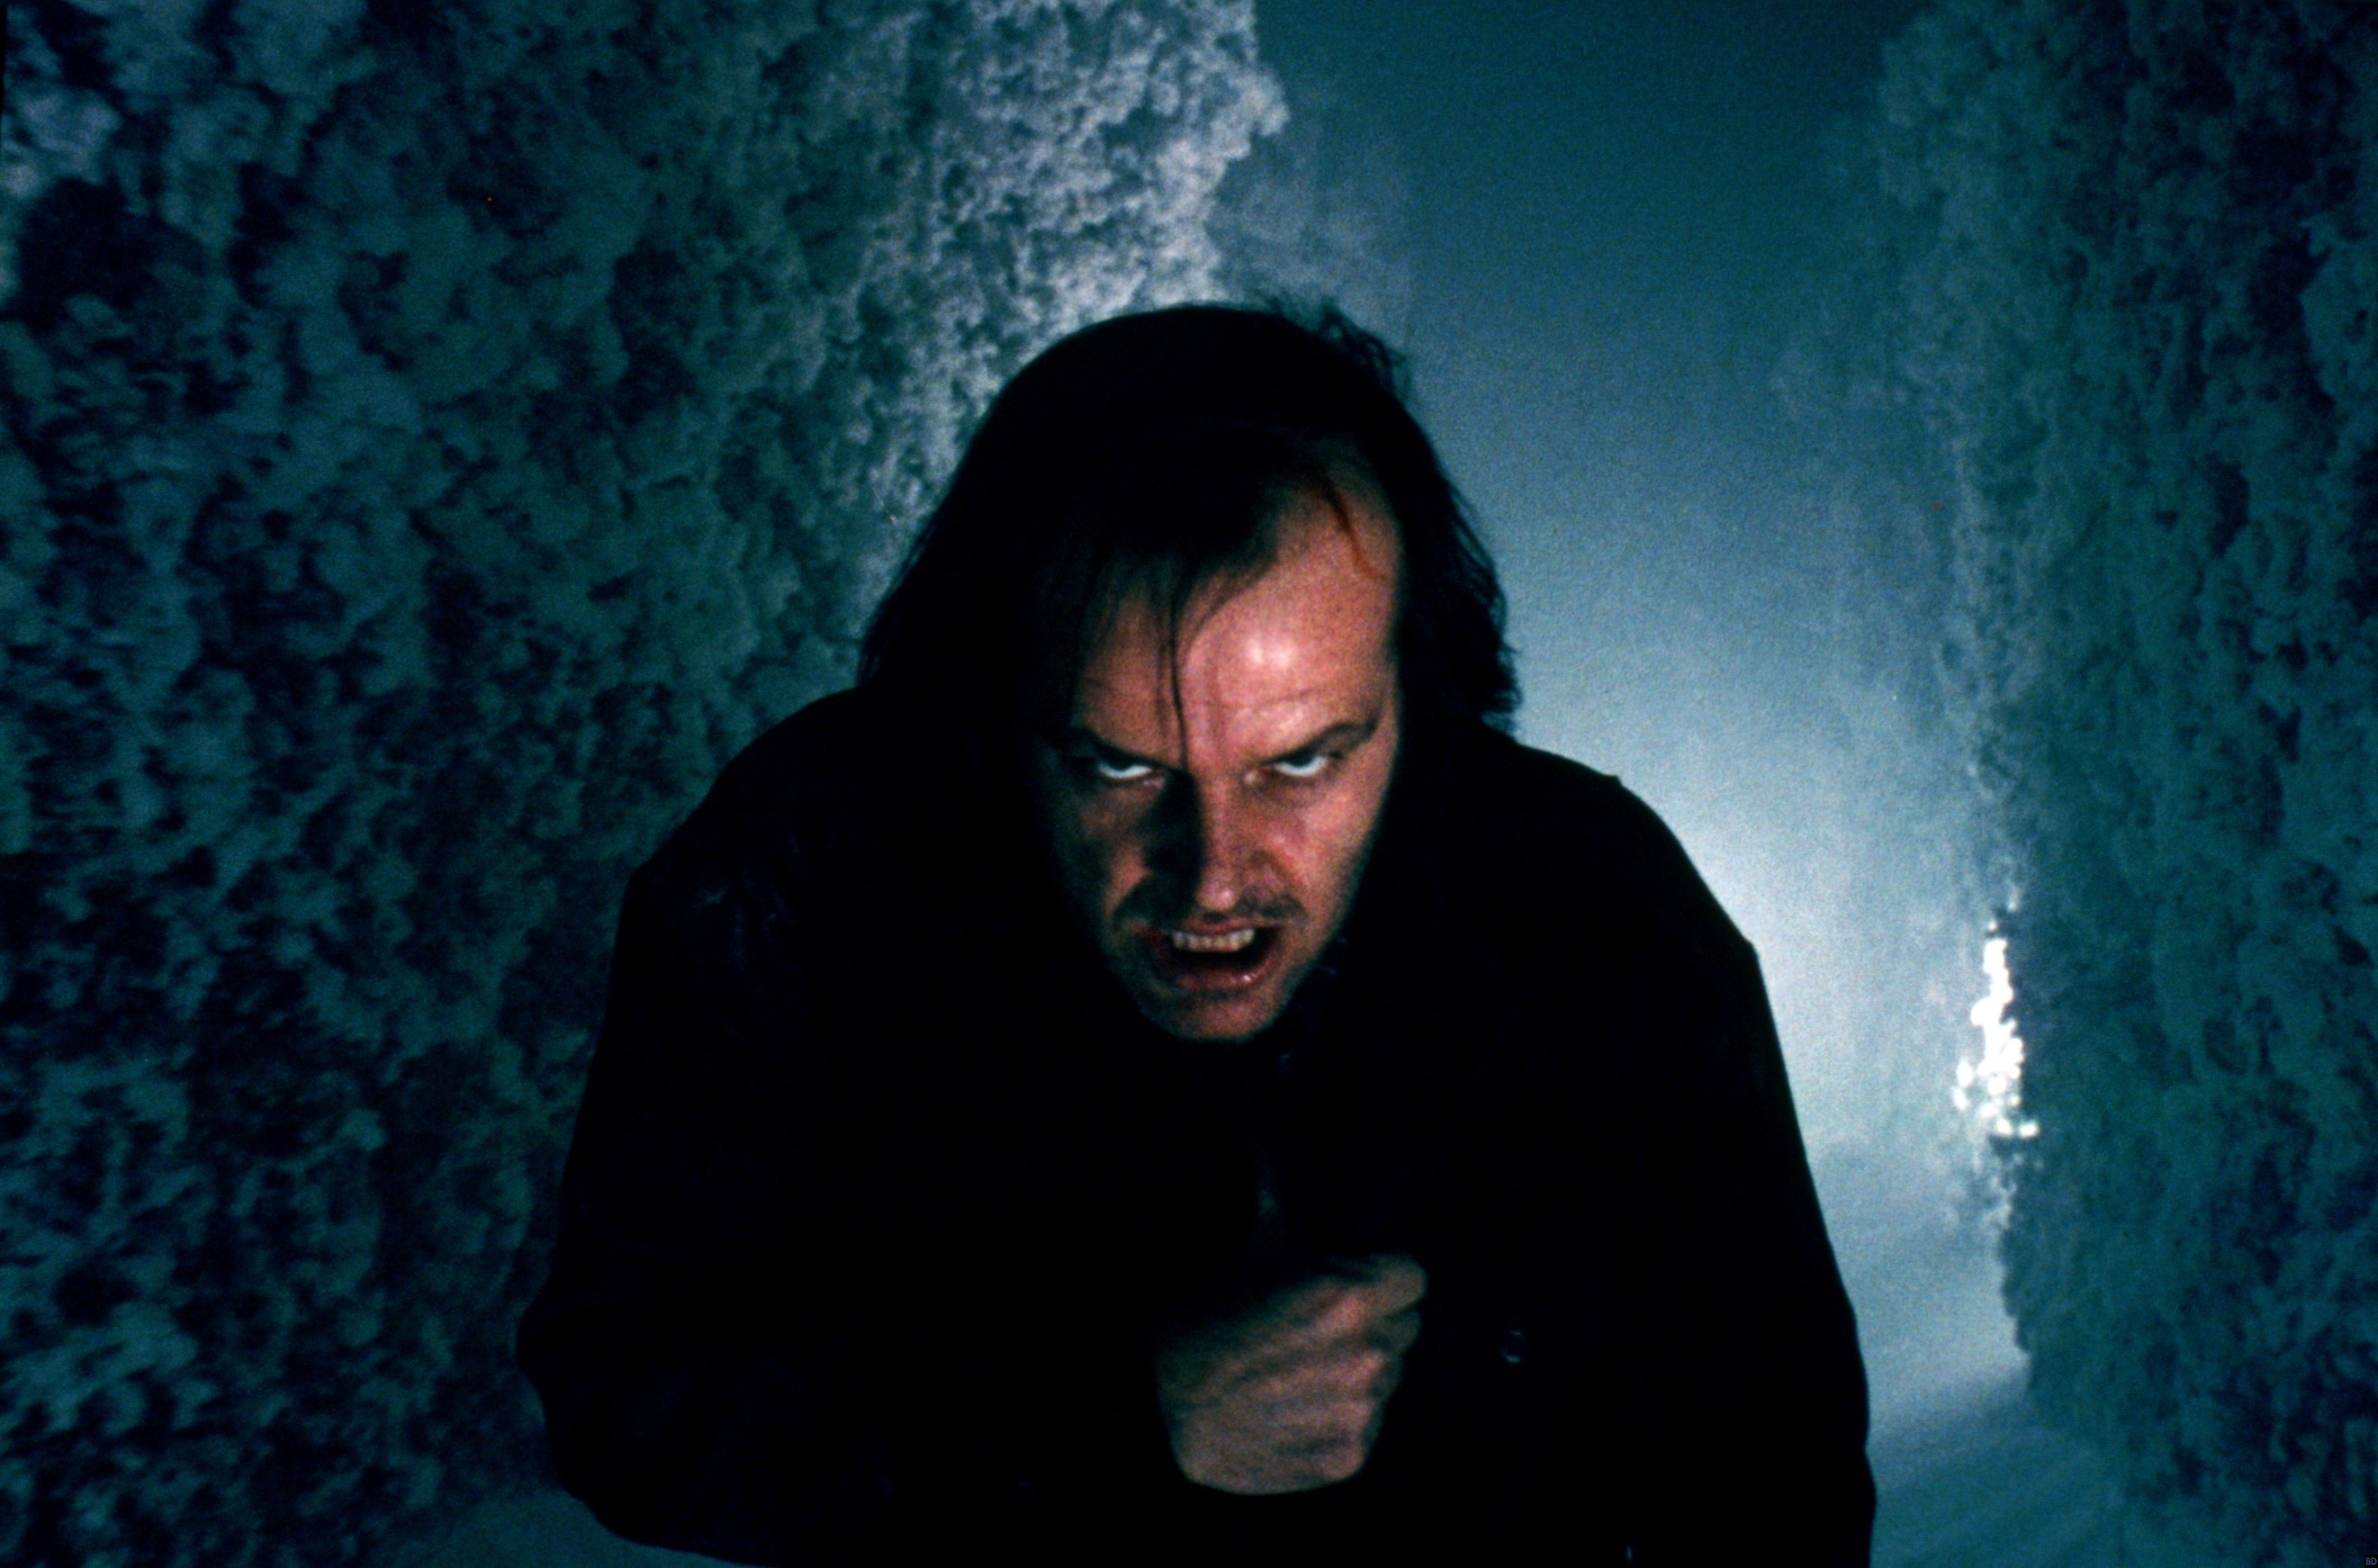 New 'The Shining' Doc Accompanies UK Re-release! - Bloody Disgusting